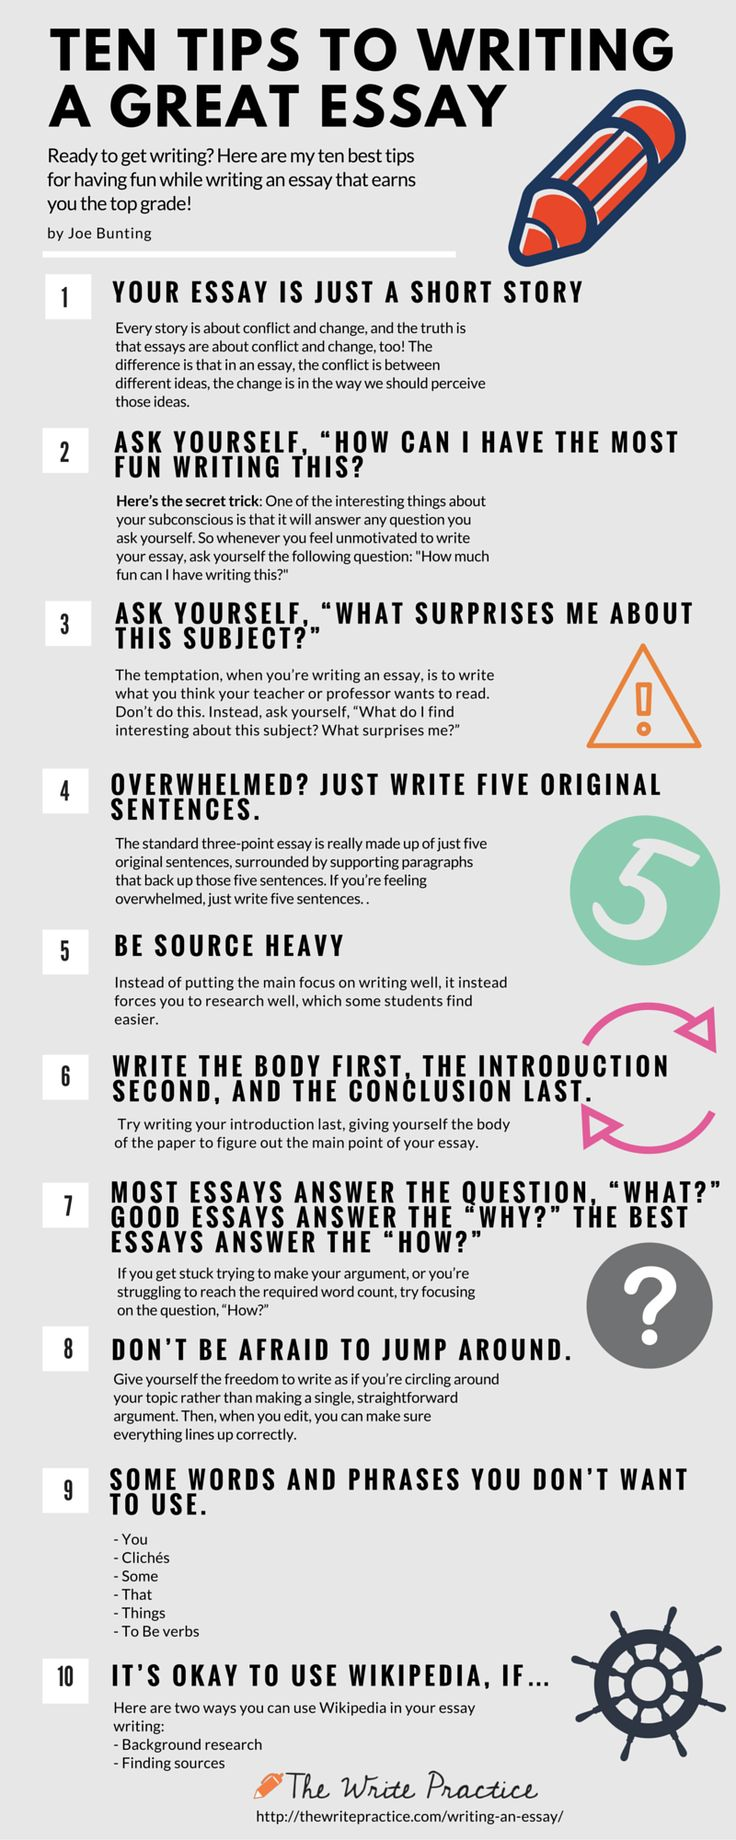 With that in mind, here's an infographic with ten tips to write an essay without hating every moment of the process.